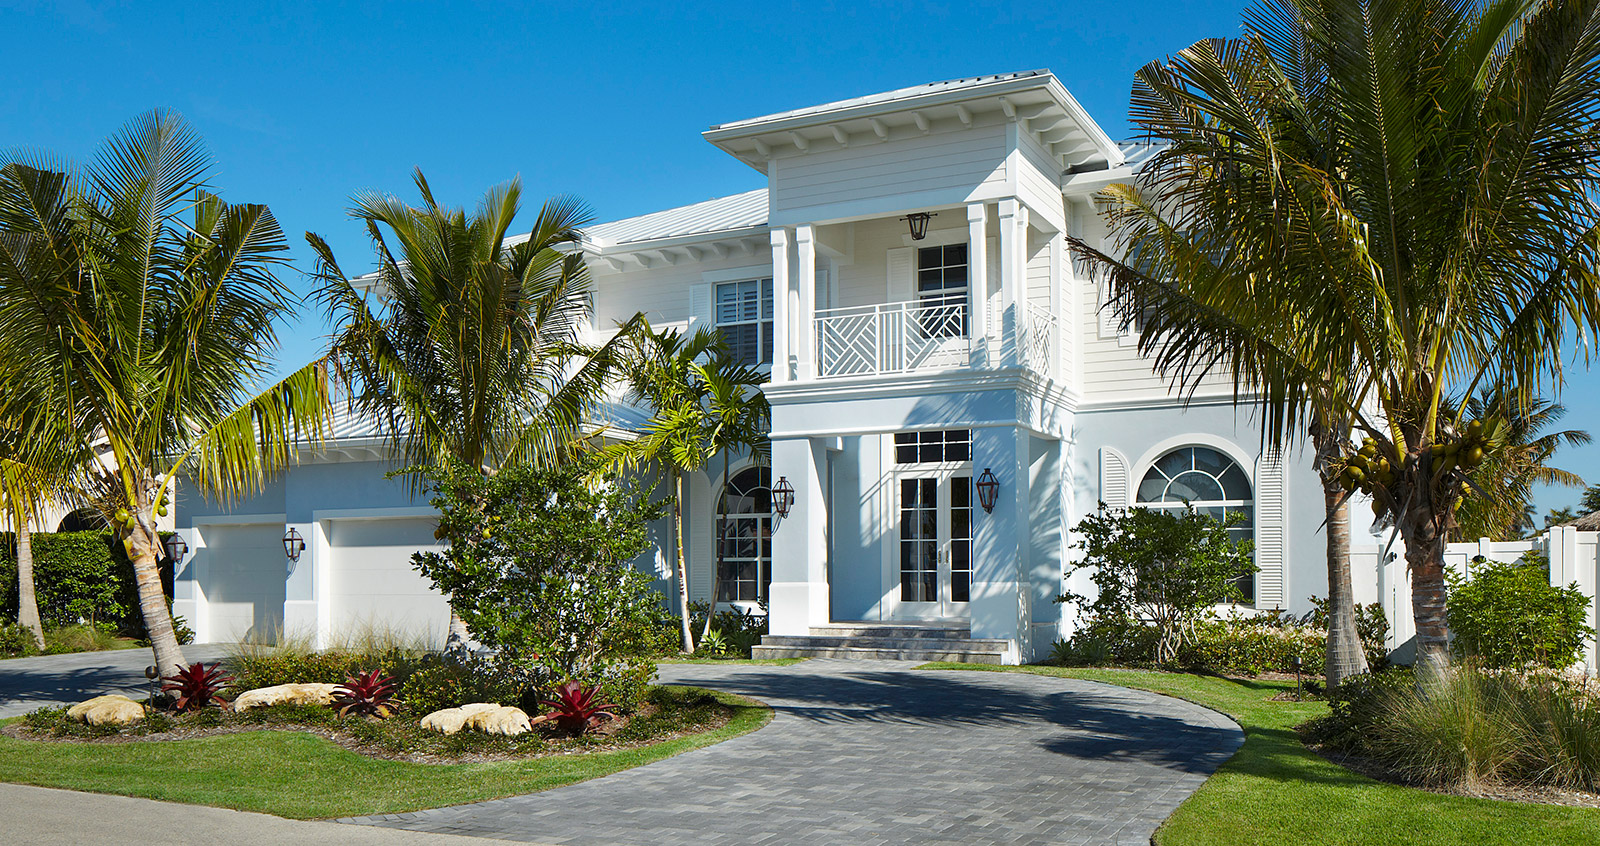 Modern Exterior Paint Colors Luxury West Indies Style Home